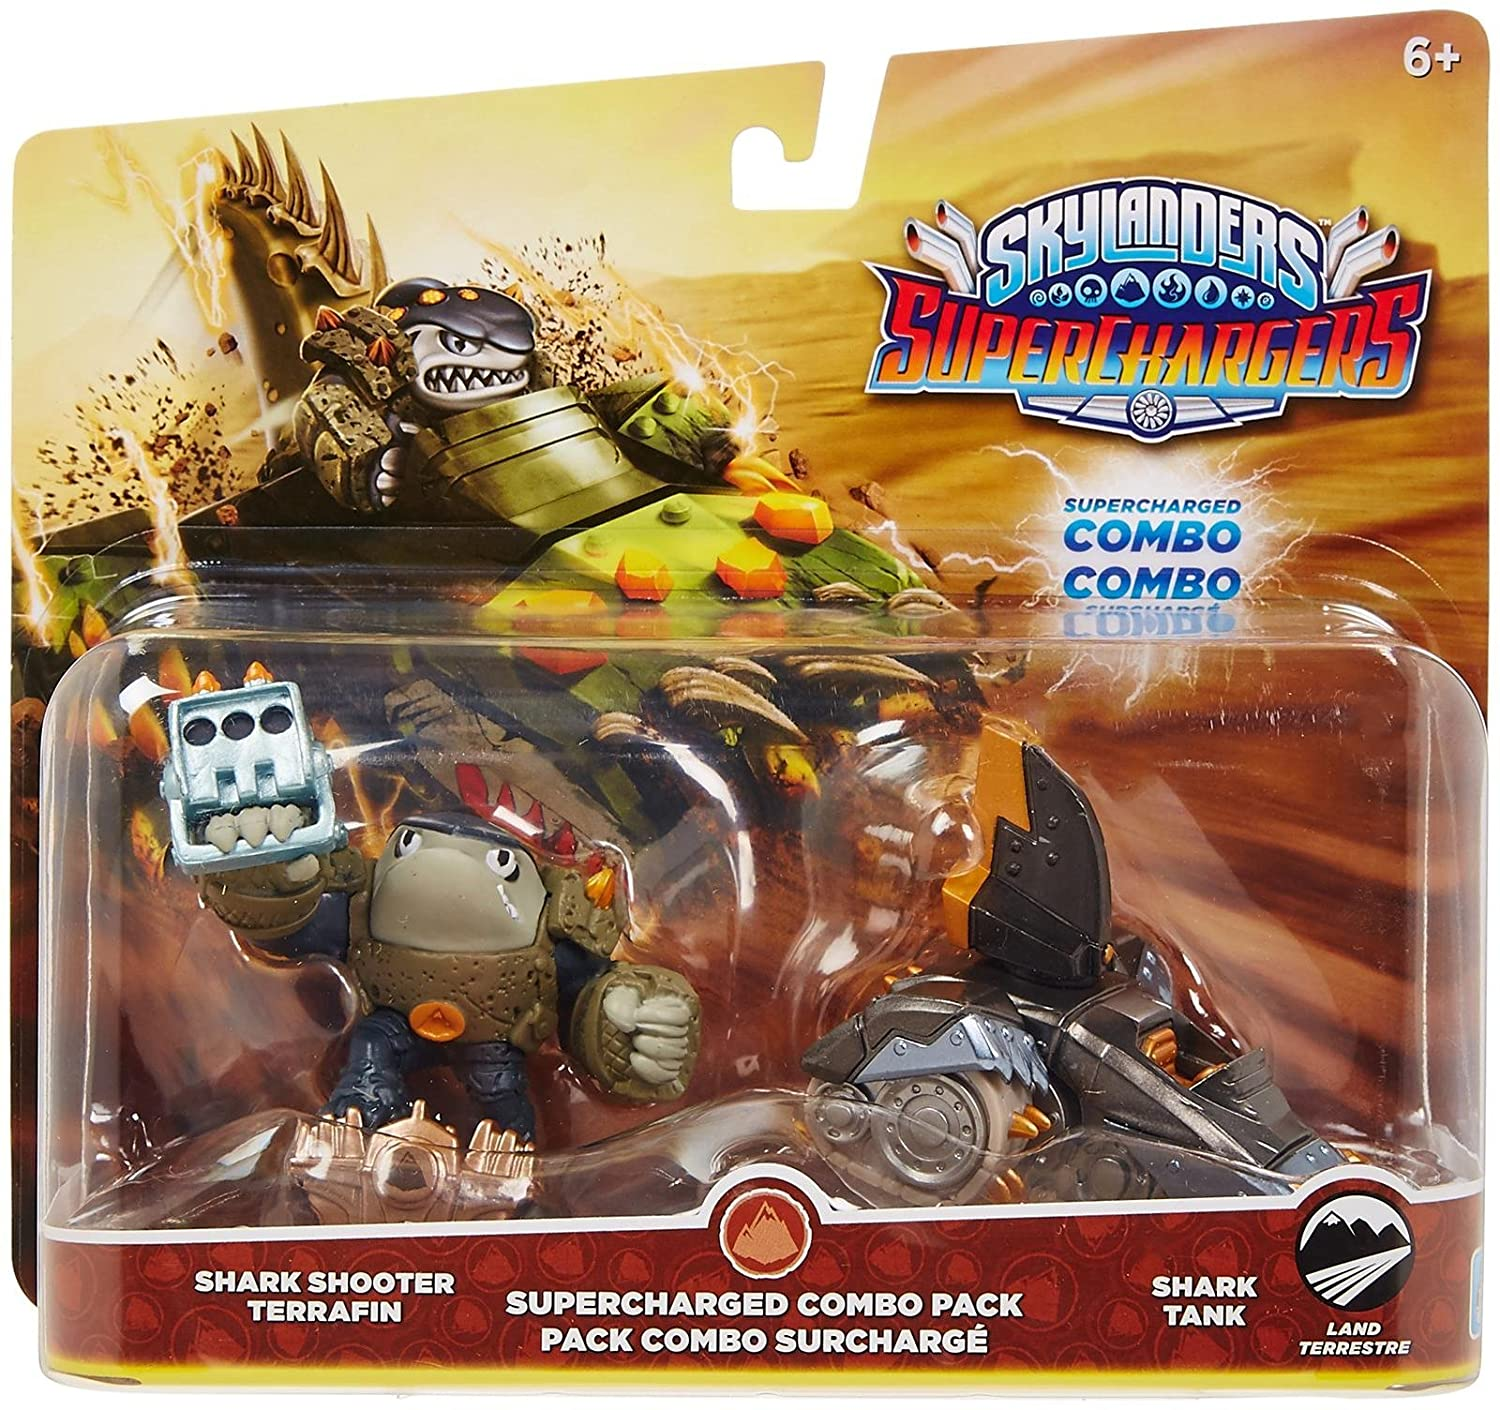 Skylanders SuperChargers Dual Pack #1: Shark Shooter Terrafin and Shark Tank